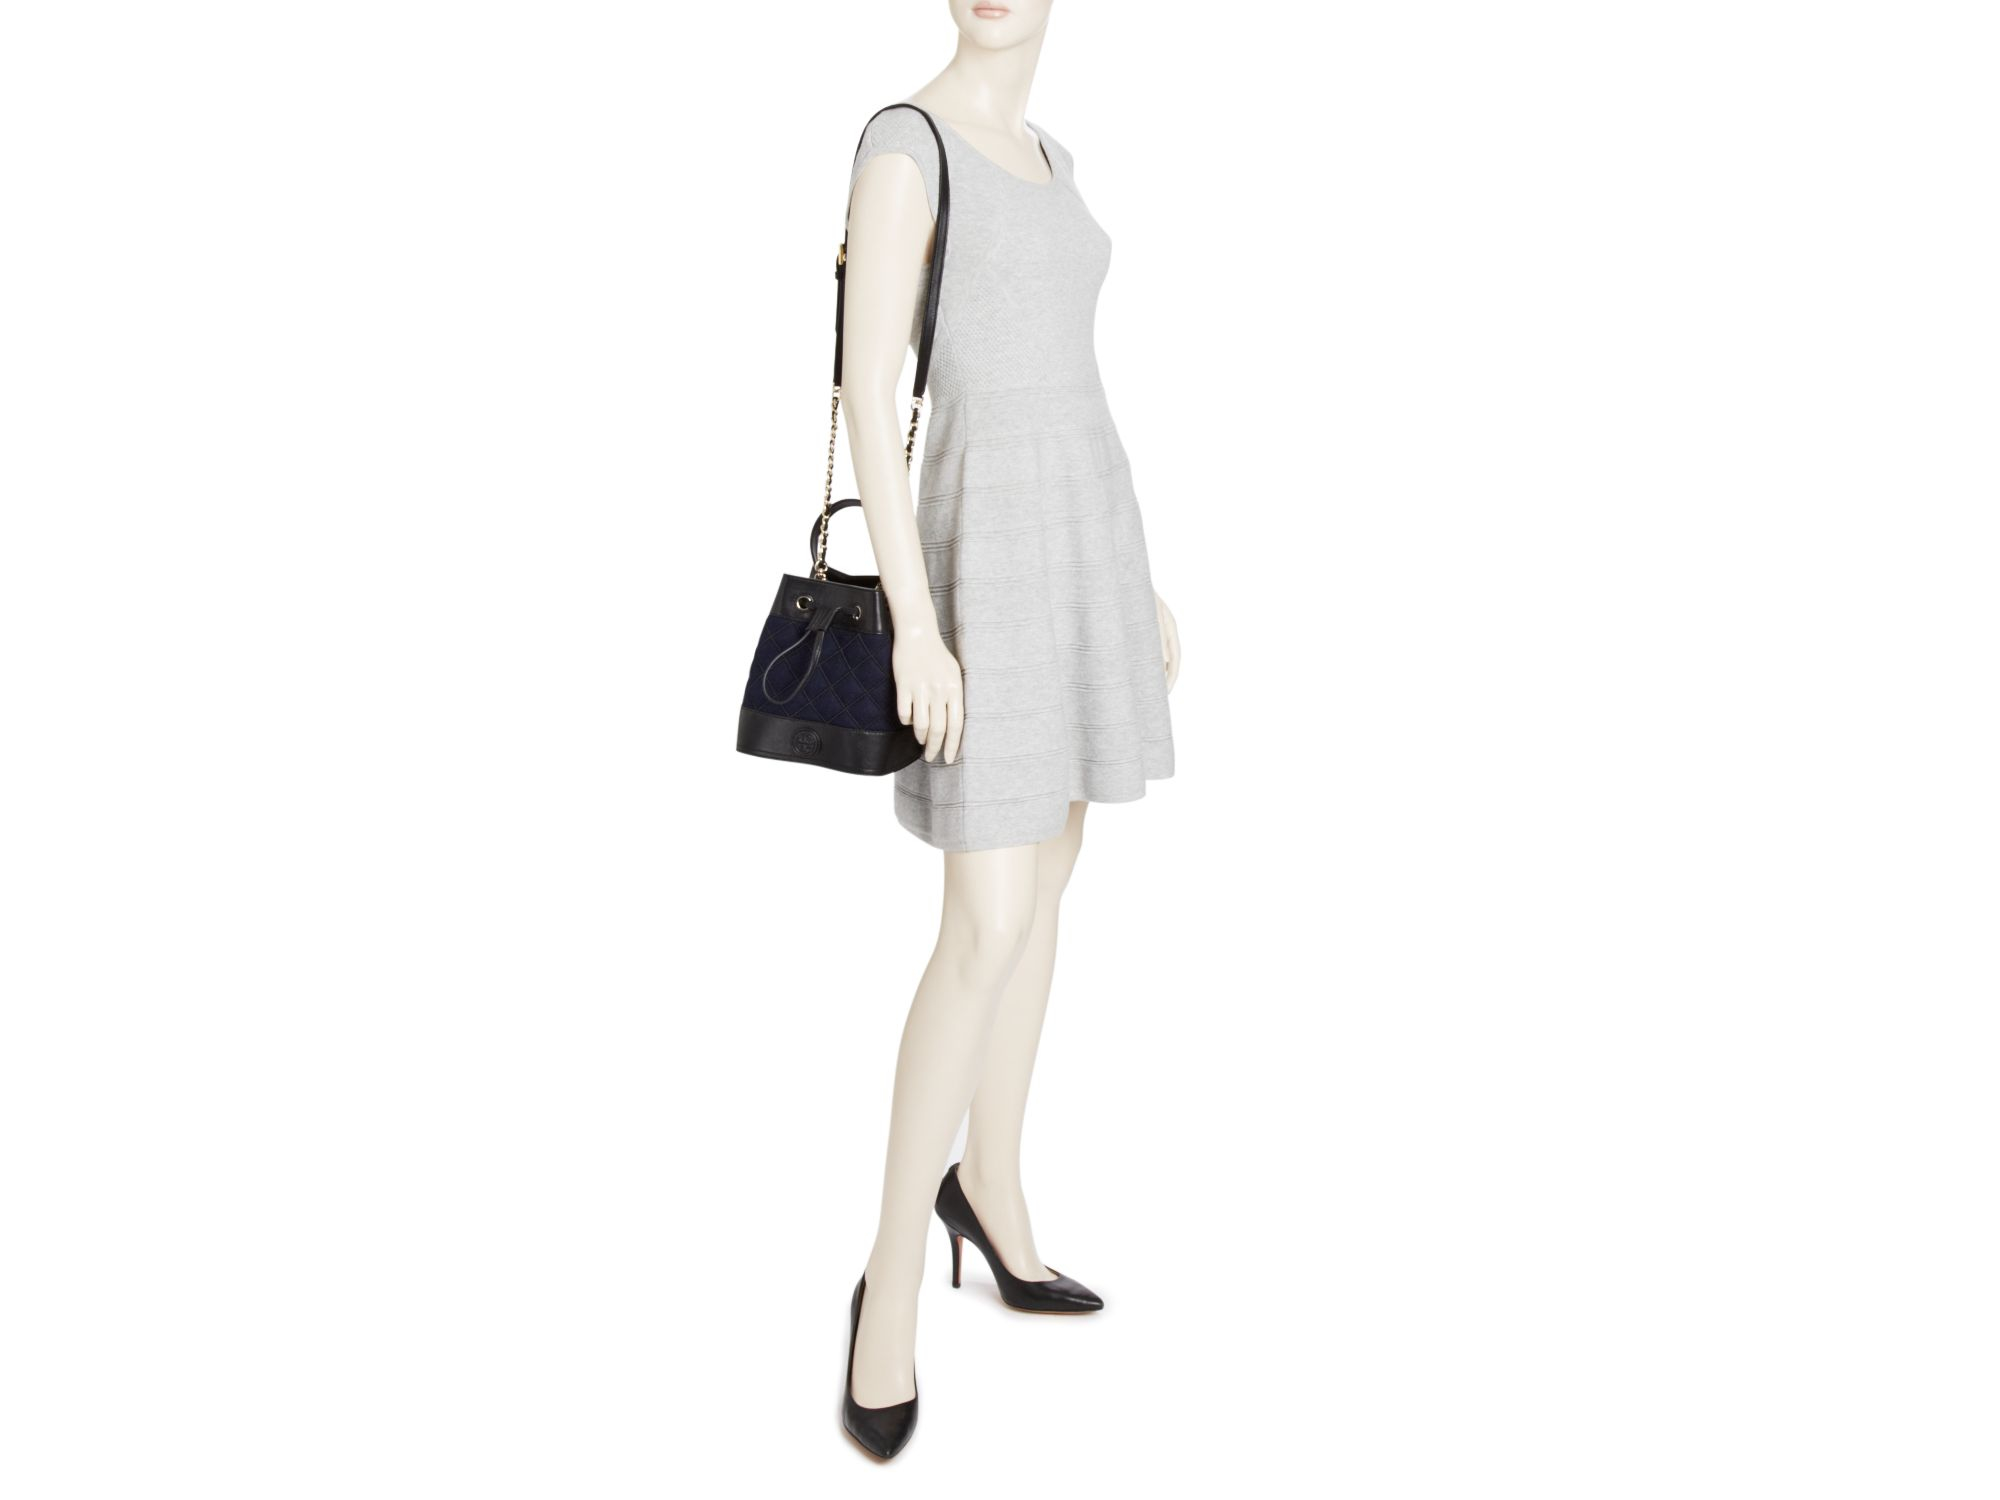 76a2ad08a8 Gallery. Previously sold at: Bloomingdale's · Women's Tory Burch Marion